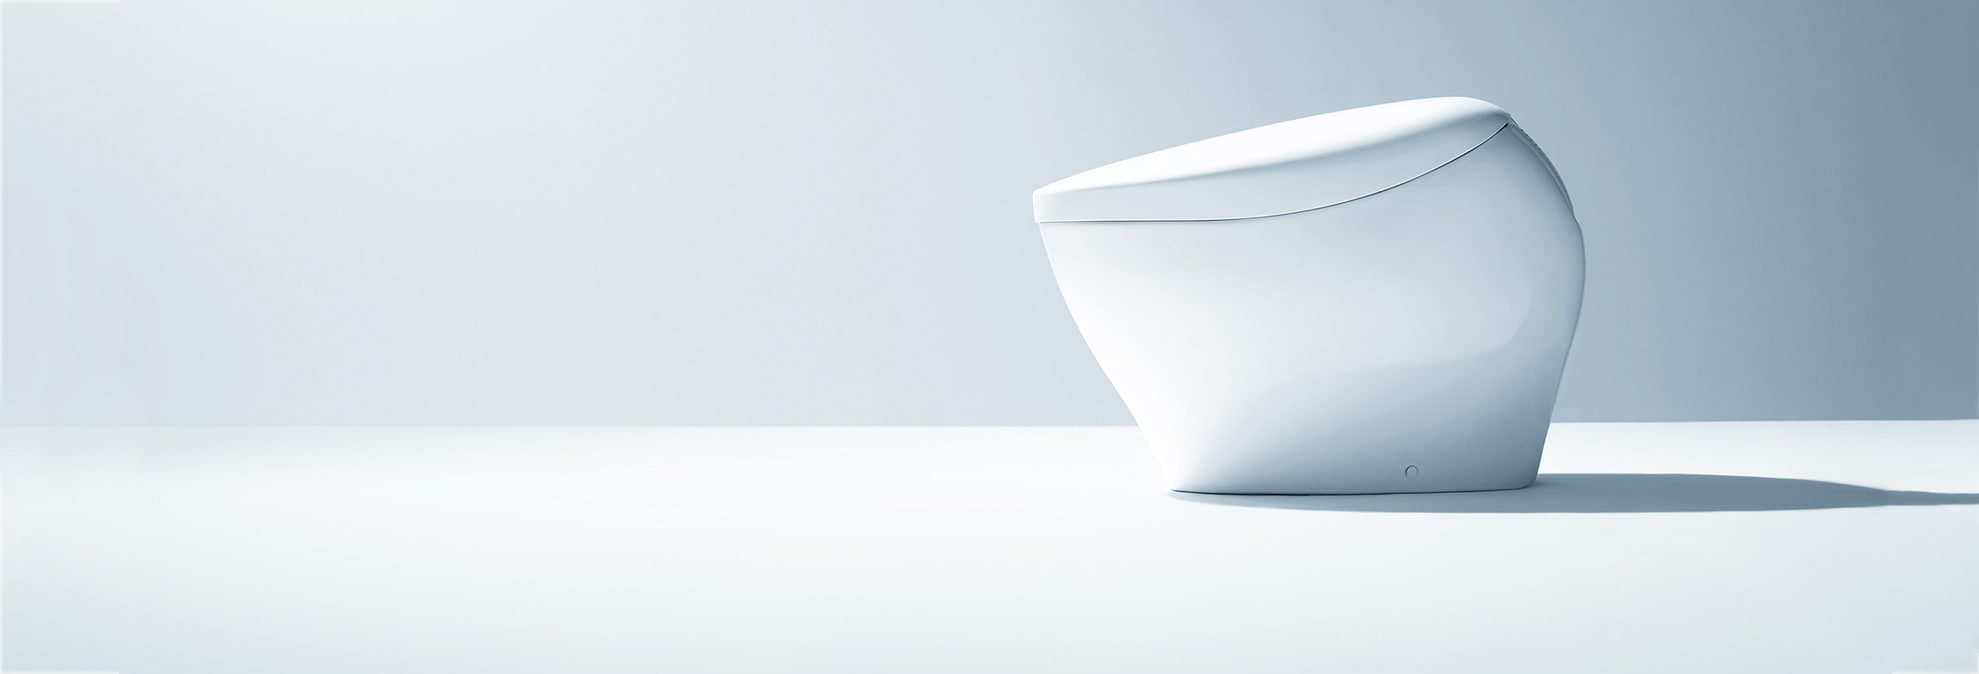 Today\'s Toilets Use Less Water and Make Less Noise - Consumer Reports